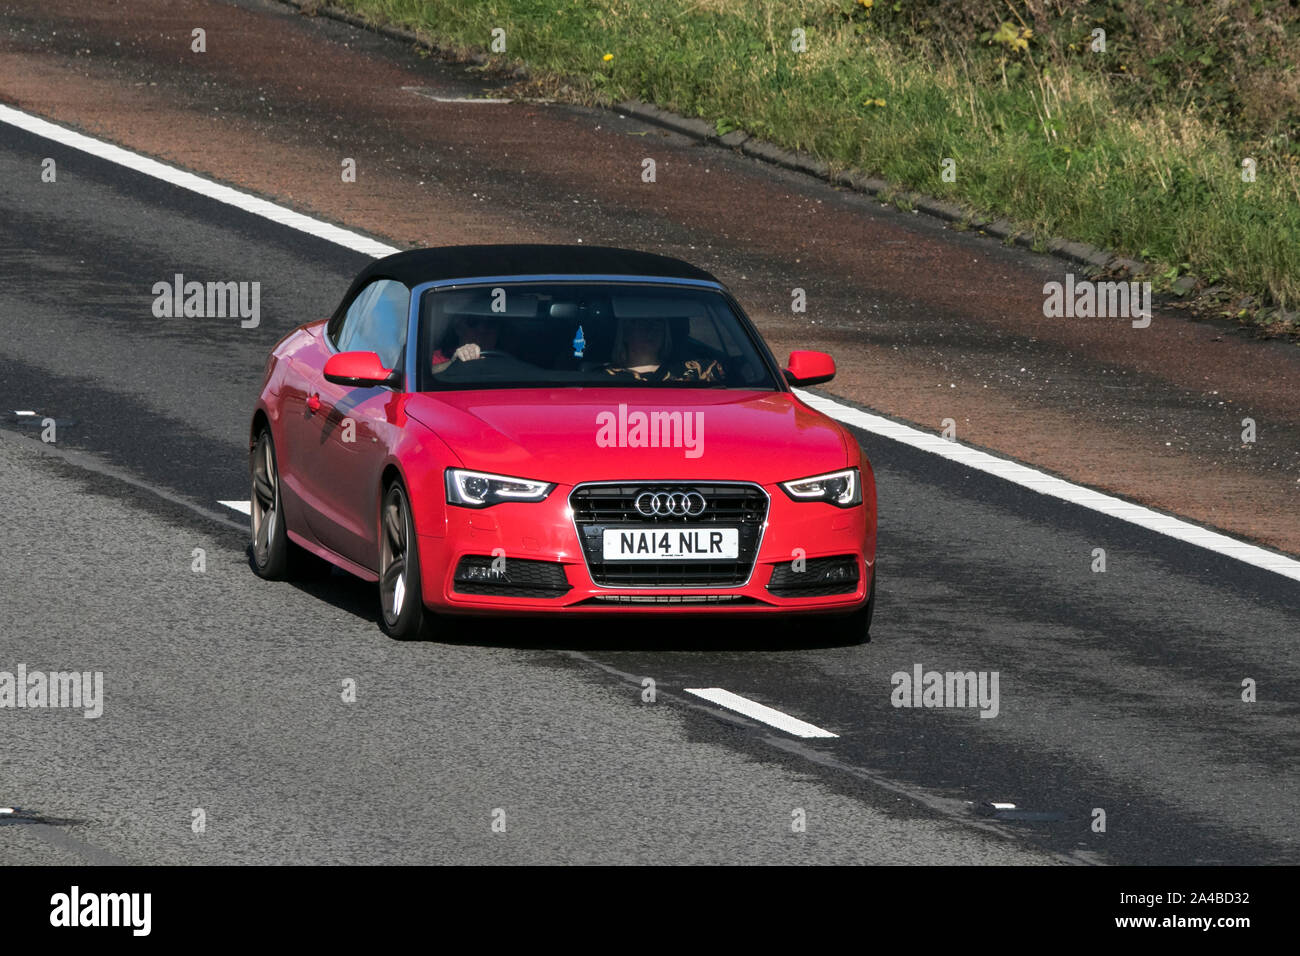 Audi A5 Convertible High Resolution Stock Photography And Images Alamy